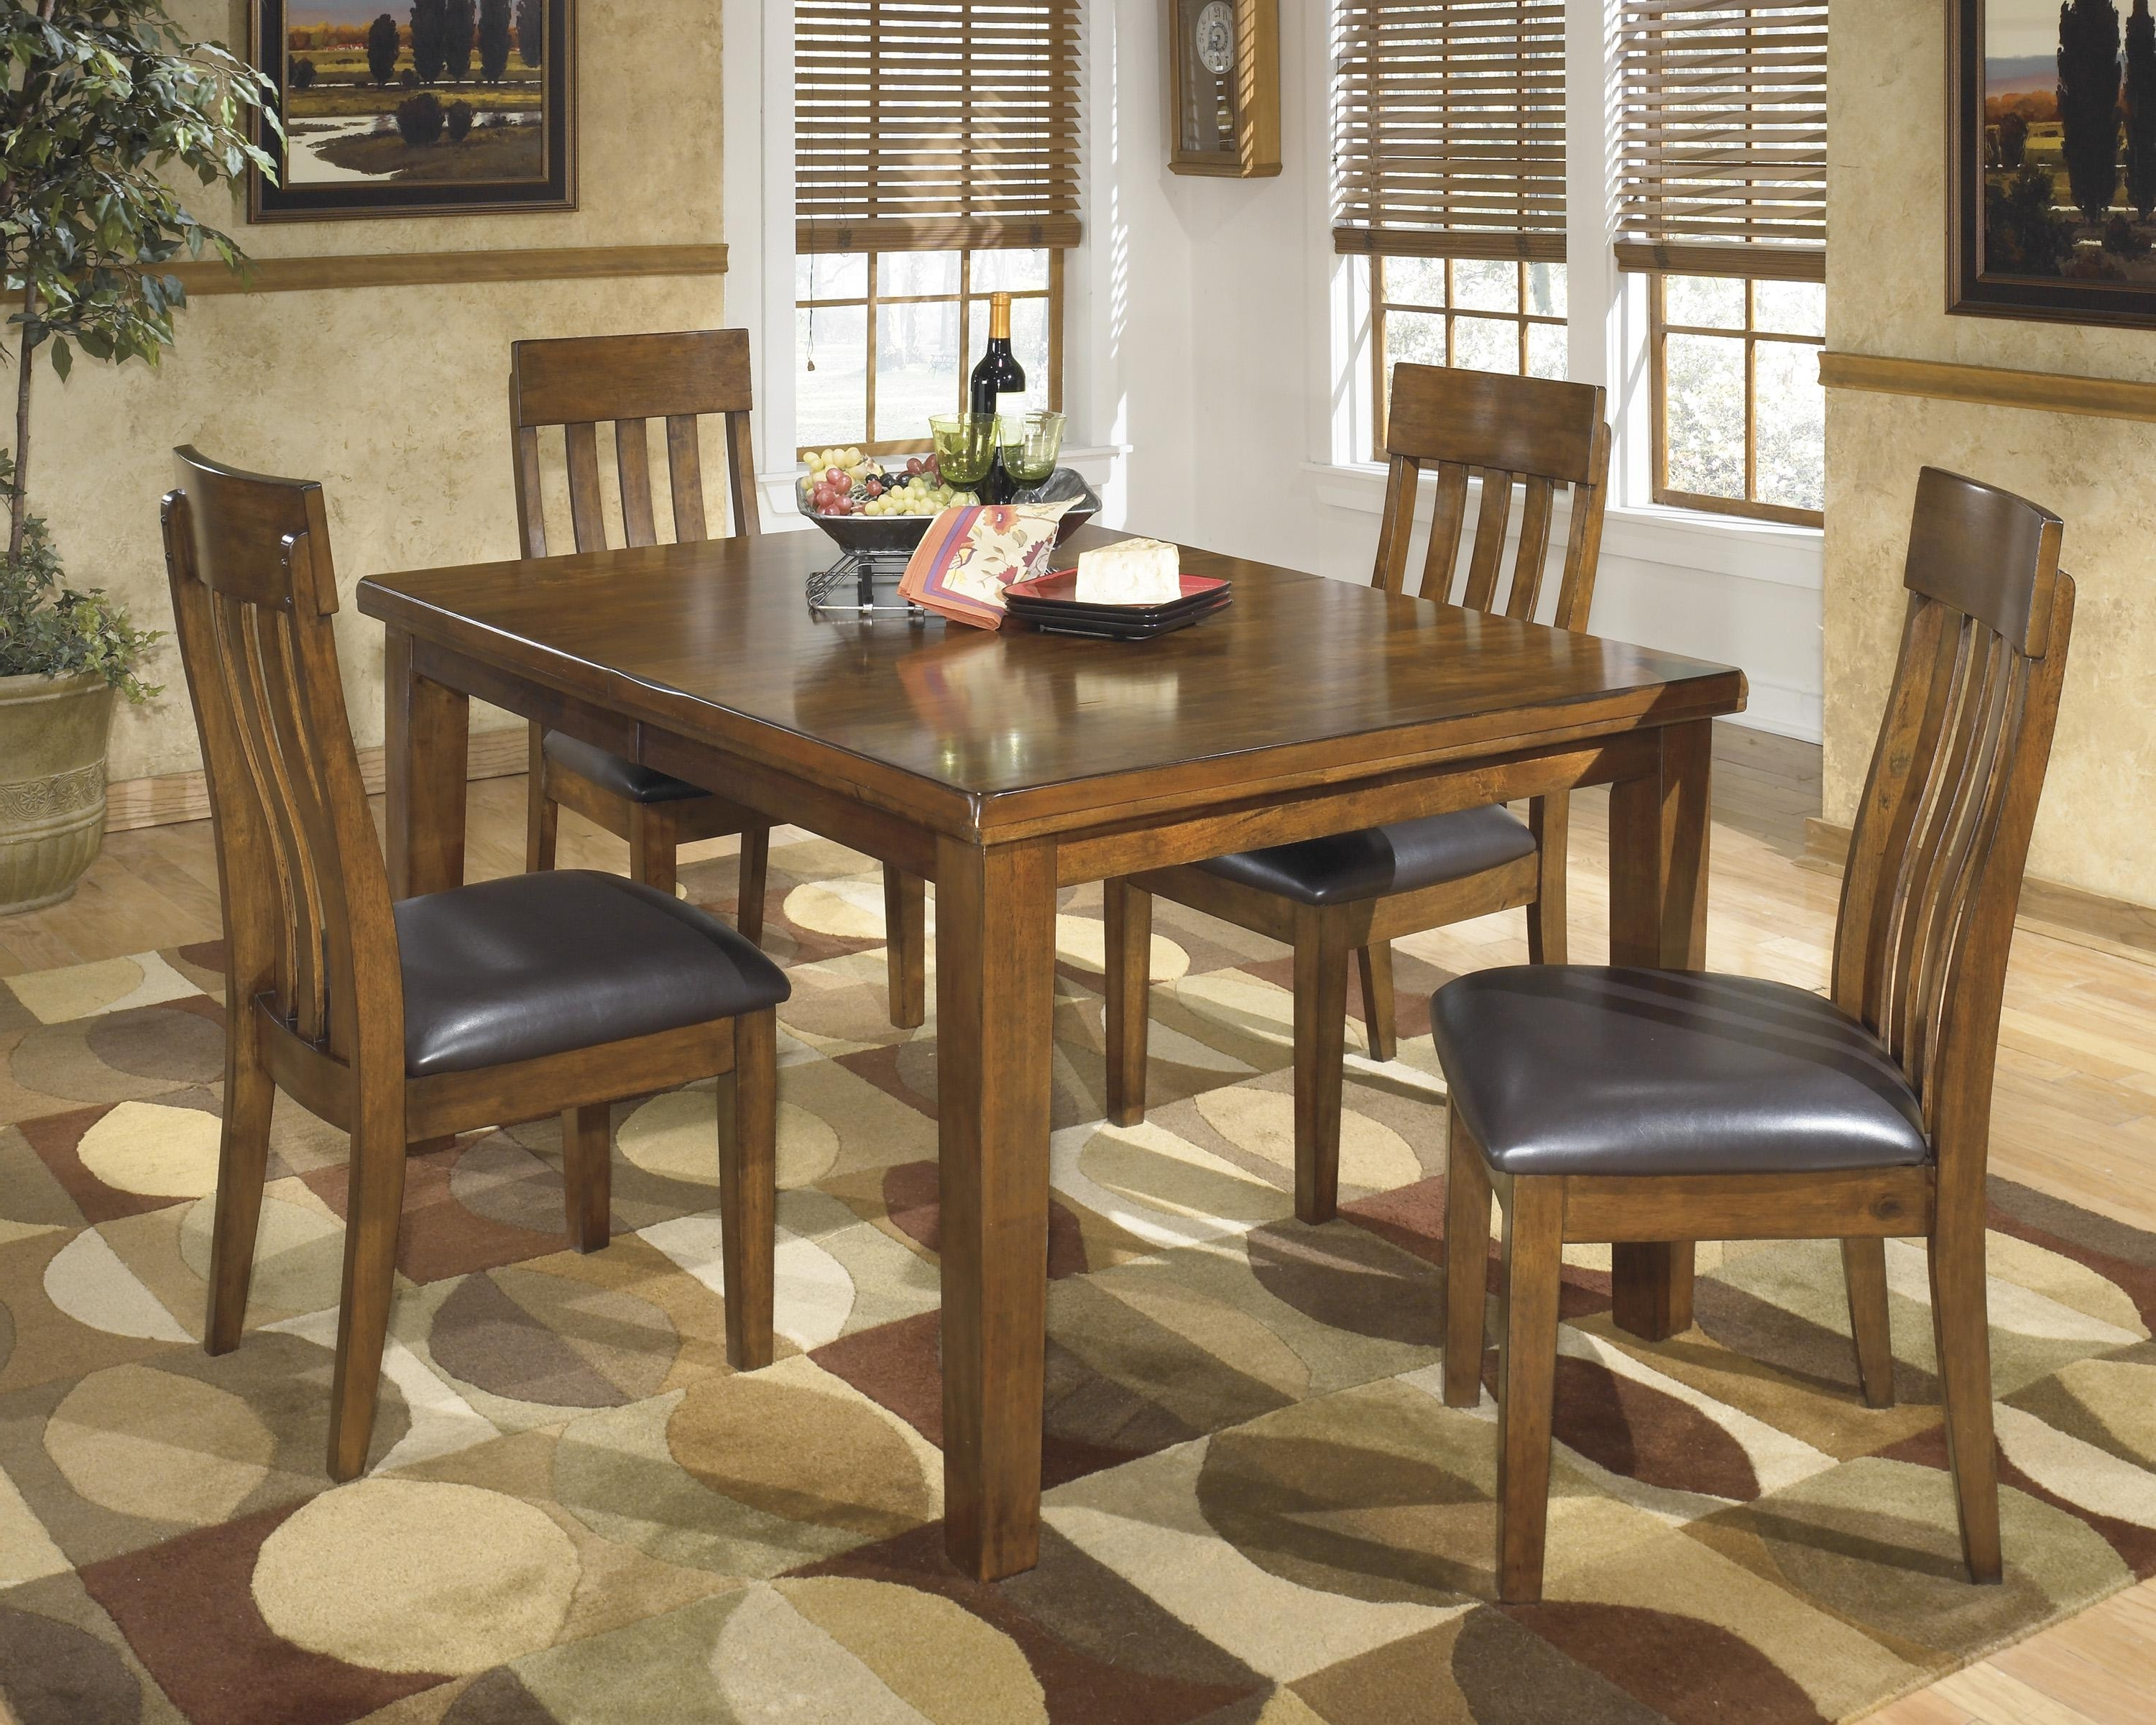 Jaxon 5 Piece Extension Counter Sets With Fabric Stools pertaining to 2017 Signature Designashley Ralene Casual 5 Piece Dining Set With